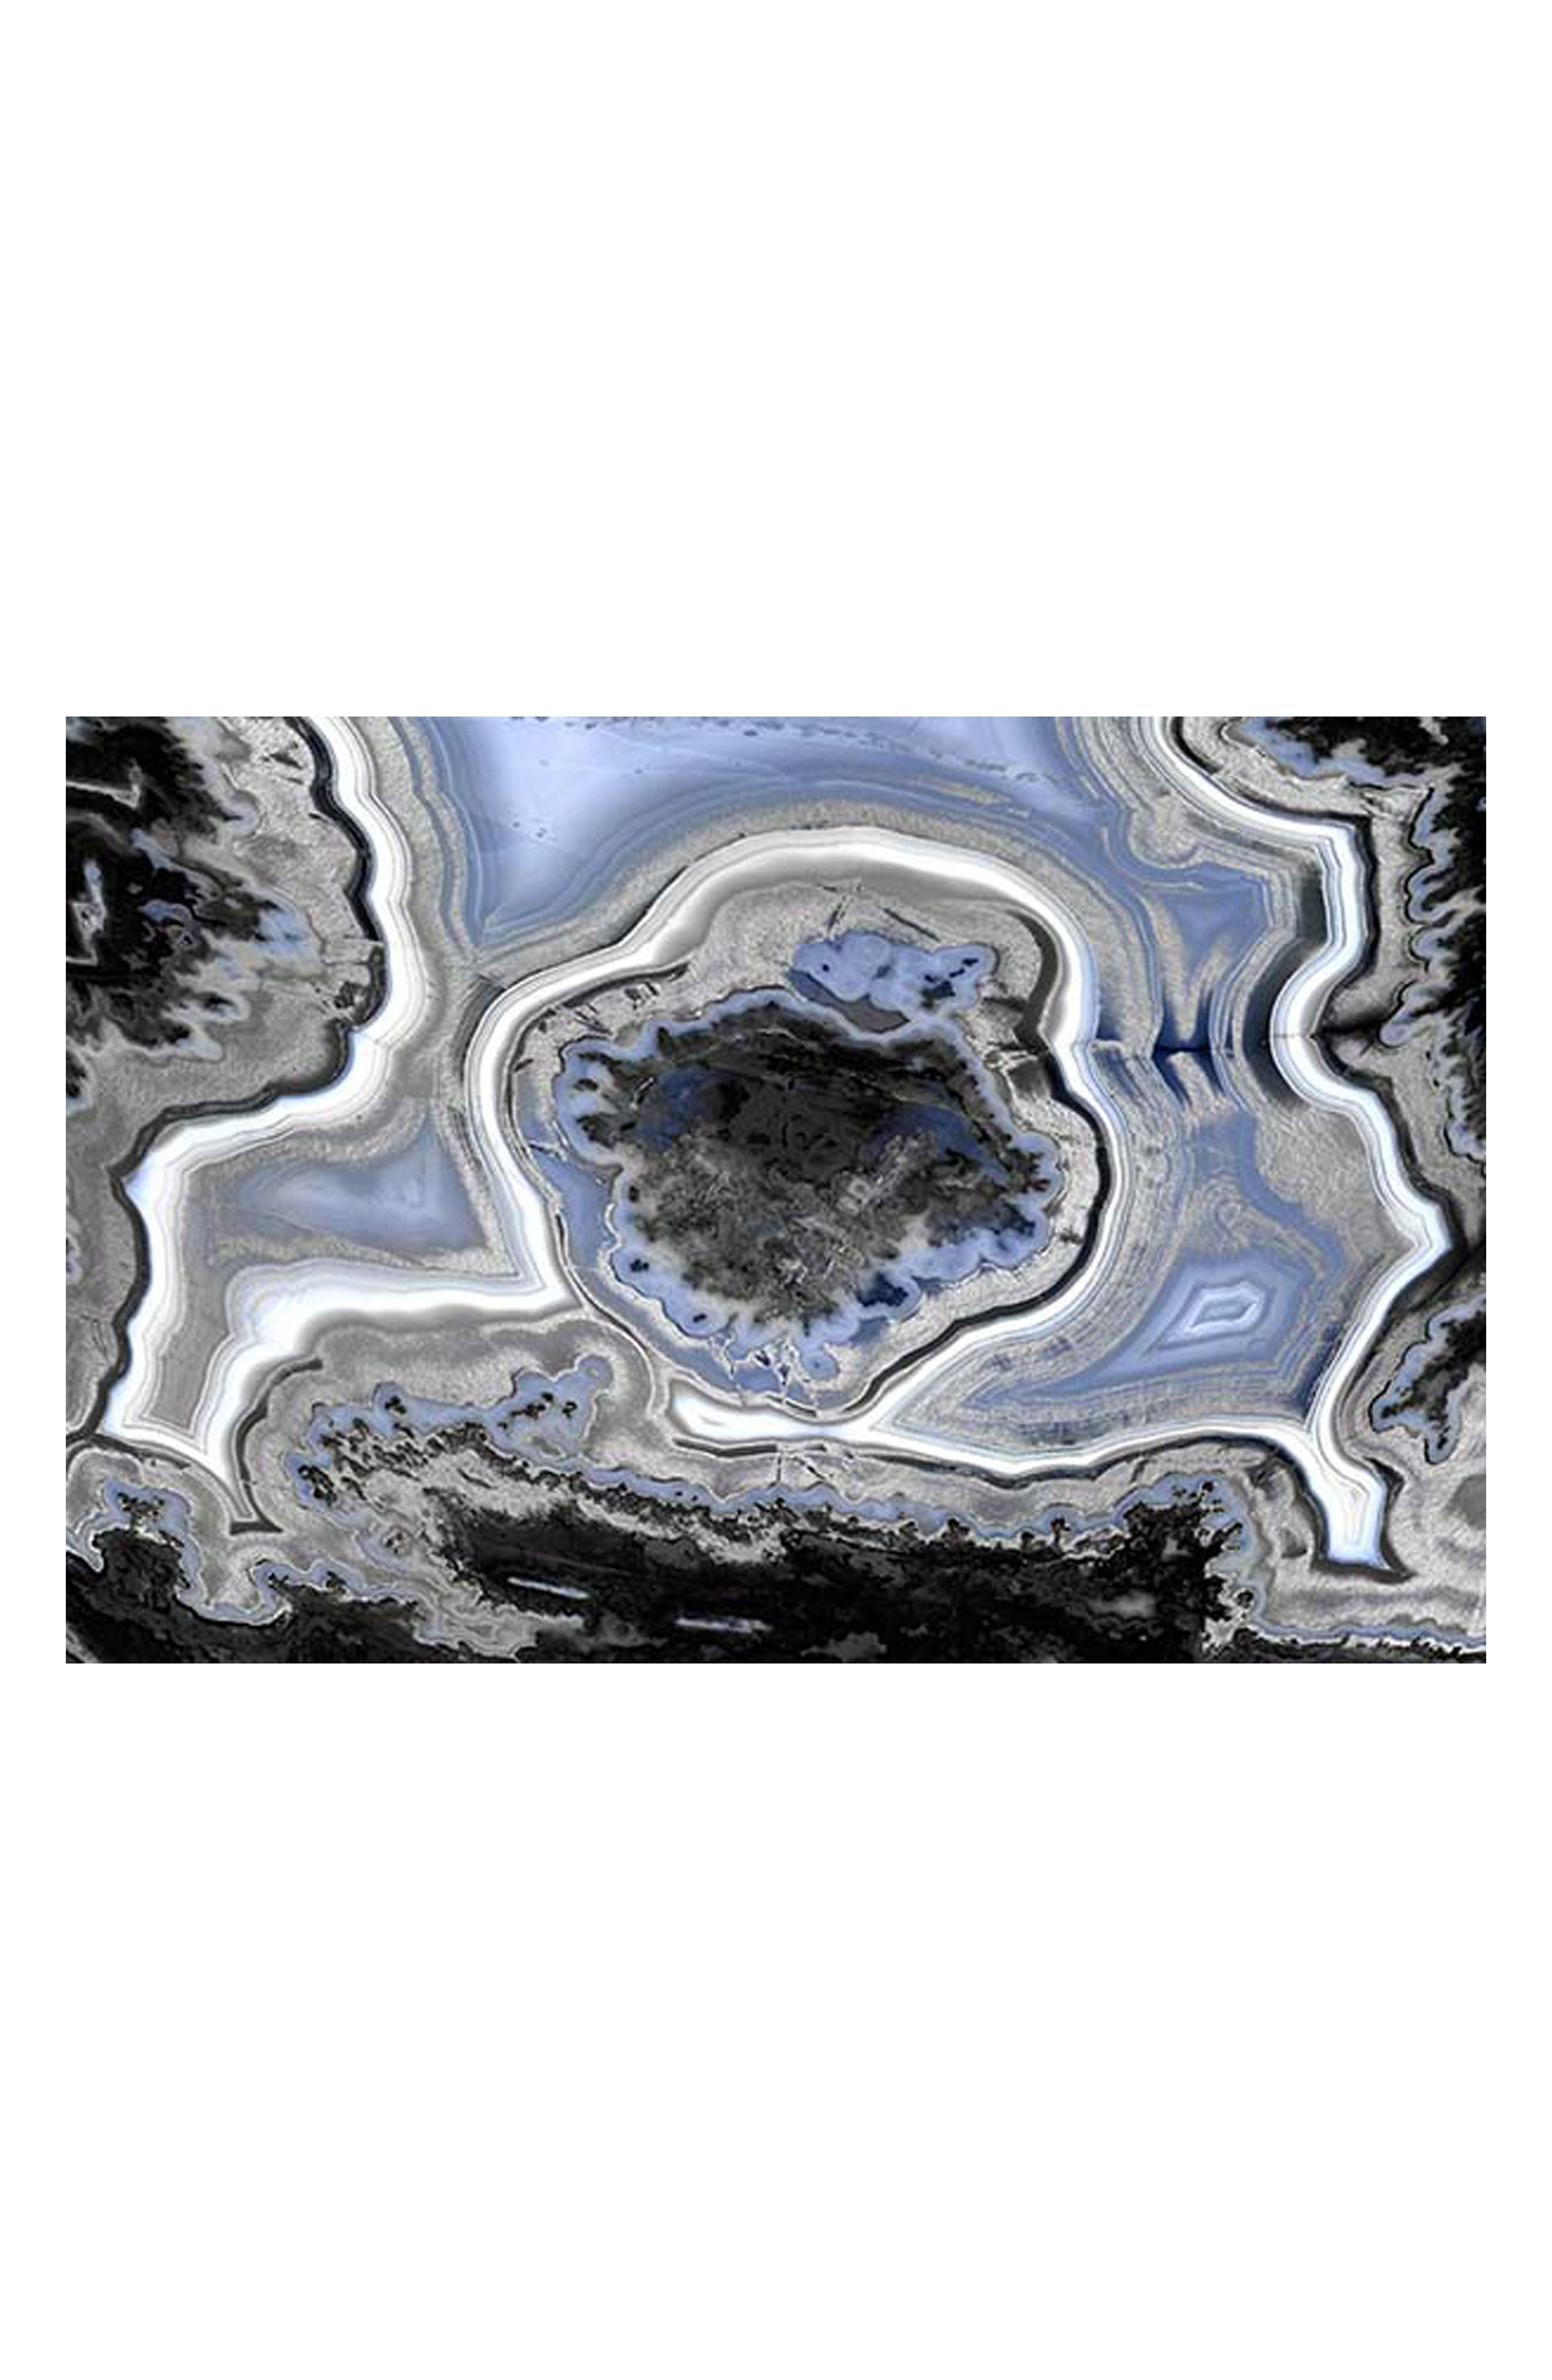 Alternate Image 1 Selected - Crystal Art Gallery New Agate Print Canvas Wall Art